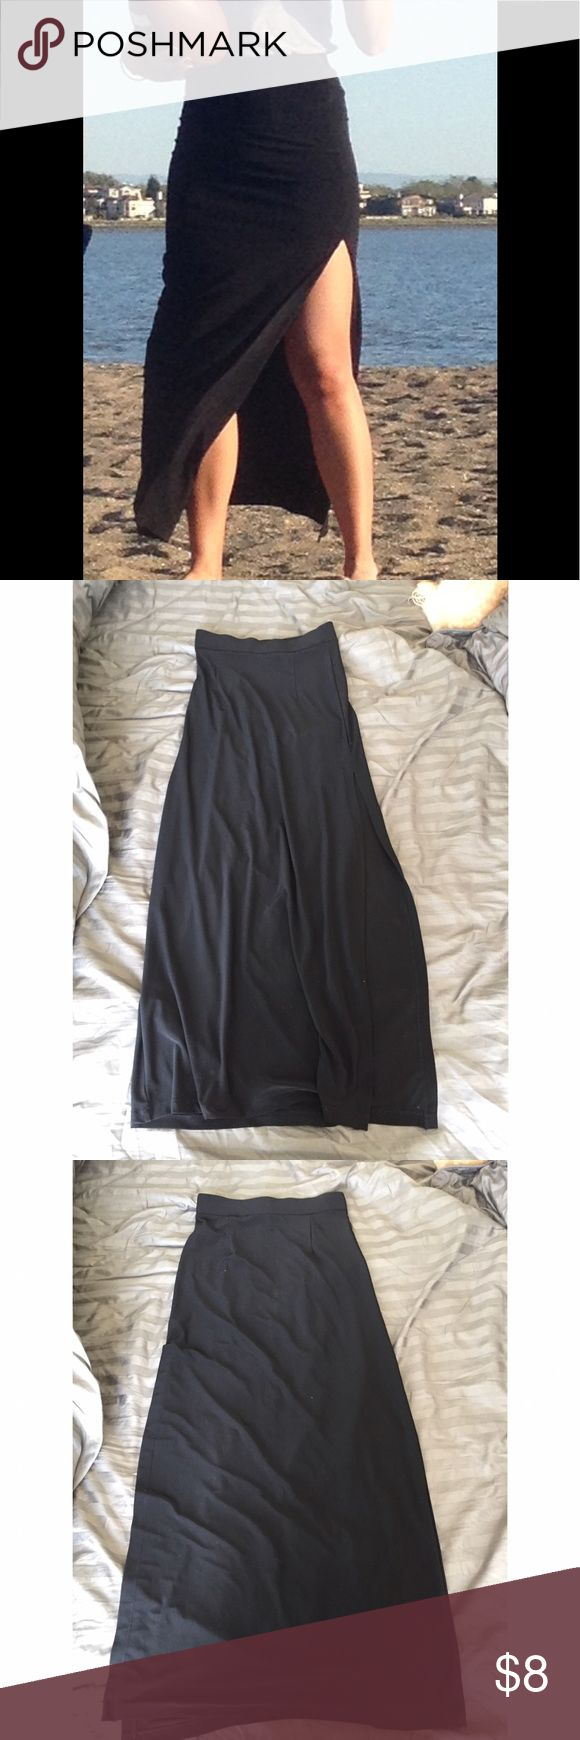 Black Maxi Skirt with Side Slit Seam on one side is coming loose, will need to restitch, but otherwise an easy fix. Great wardrobe staple. Forever 21 Skirts Maxi